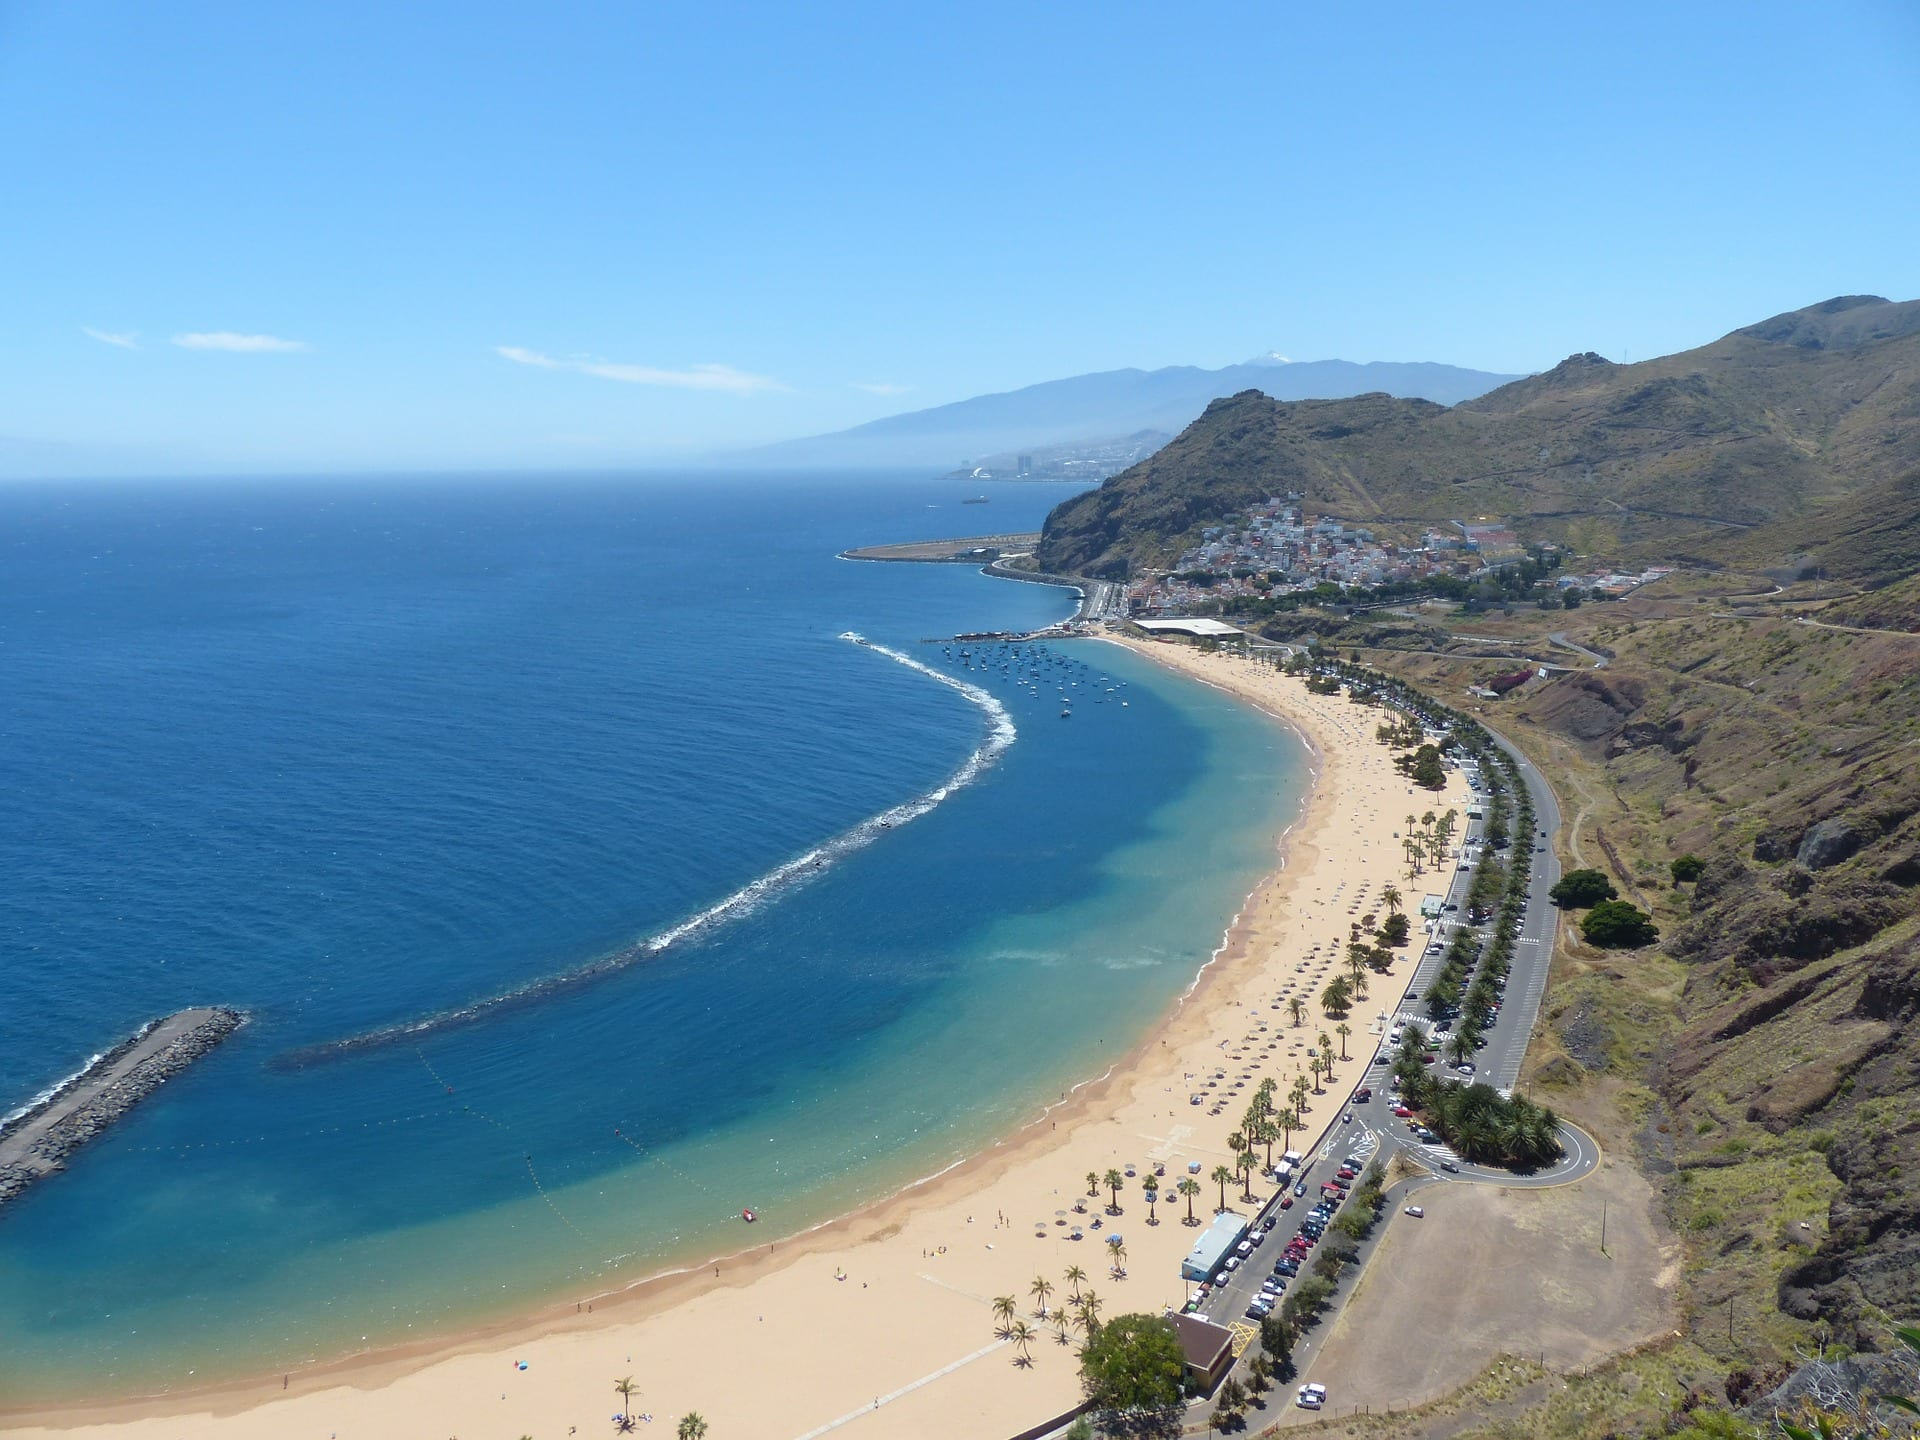 Tenerife is a popular destination for winter sun